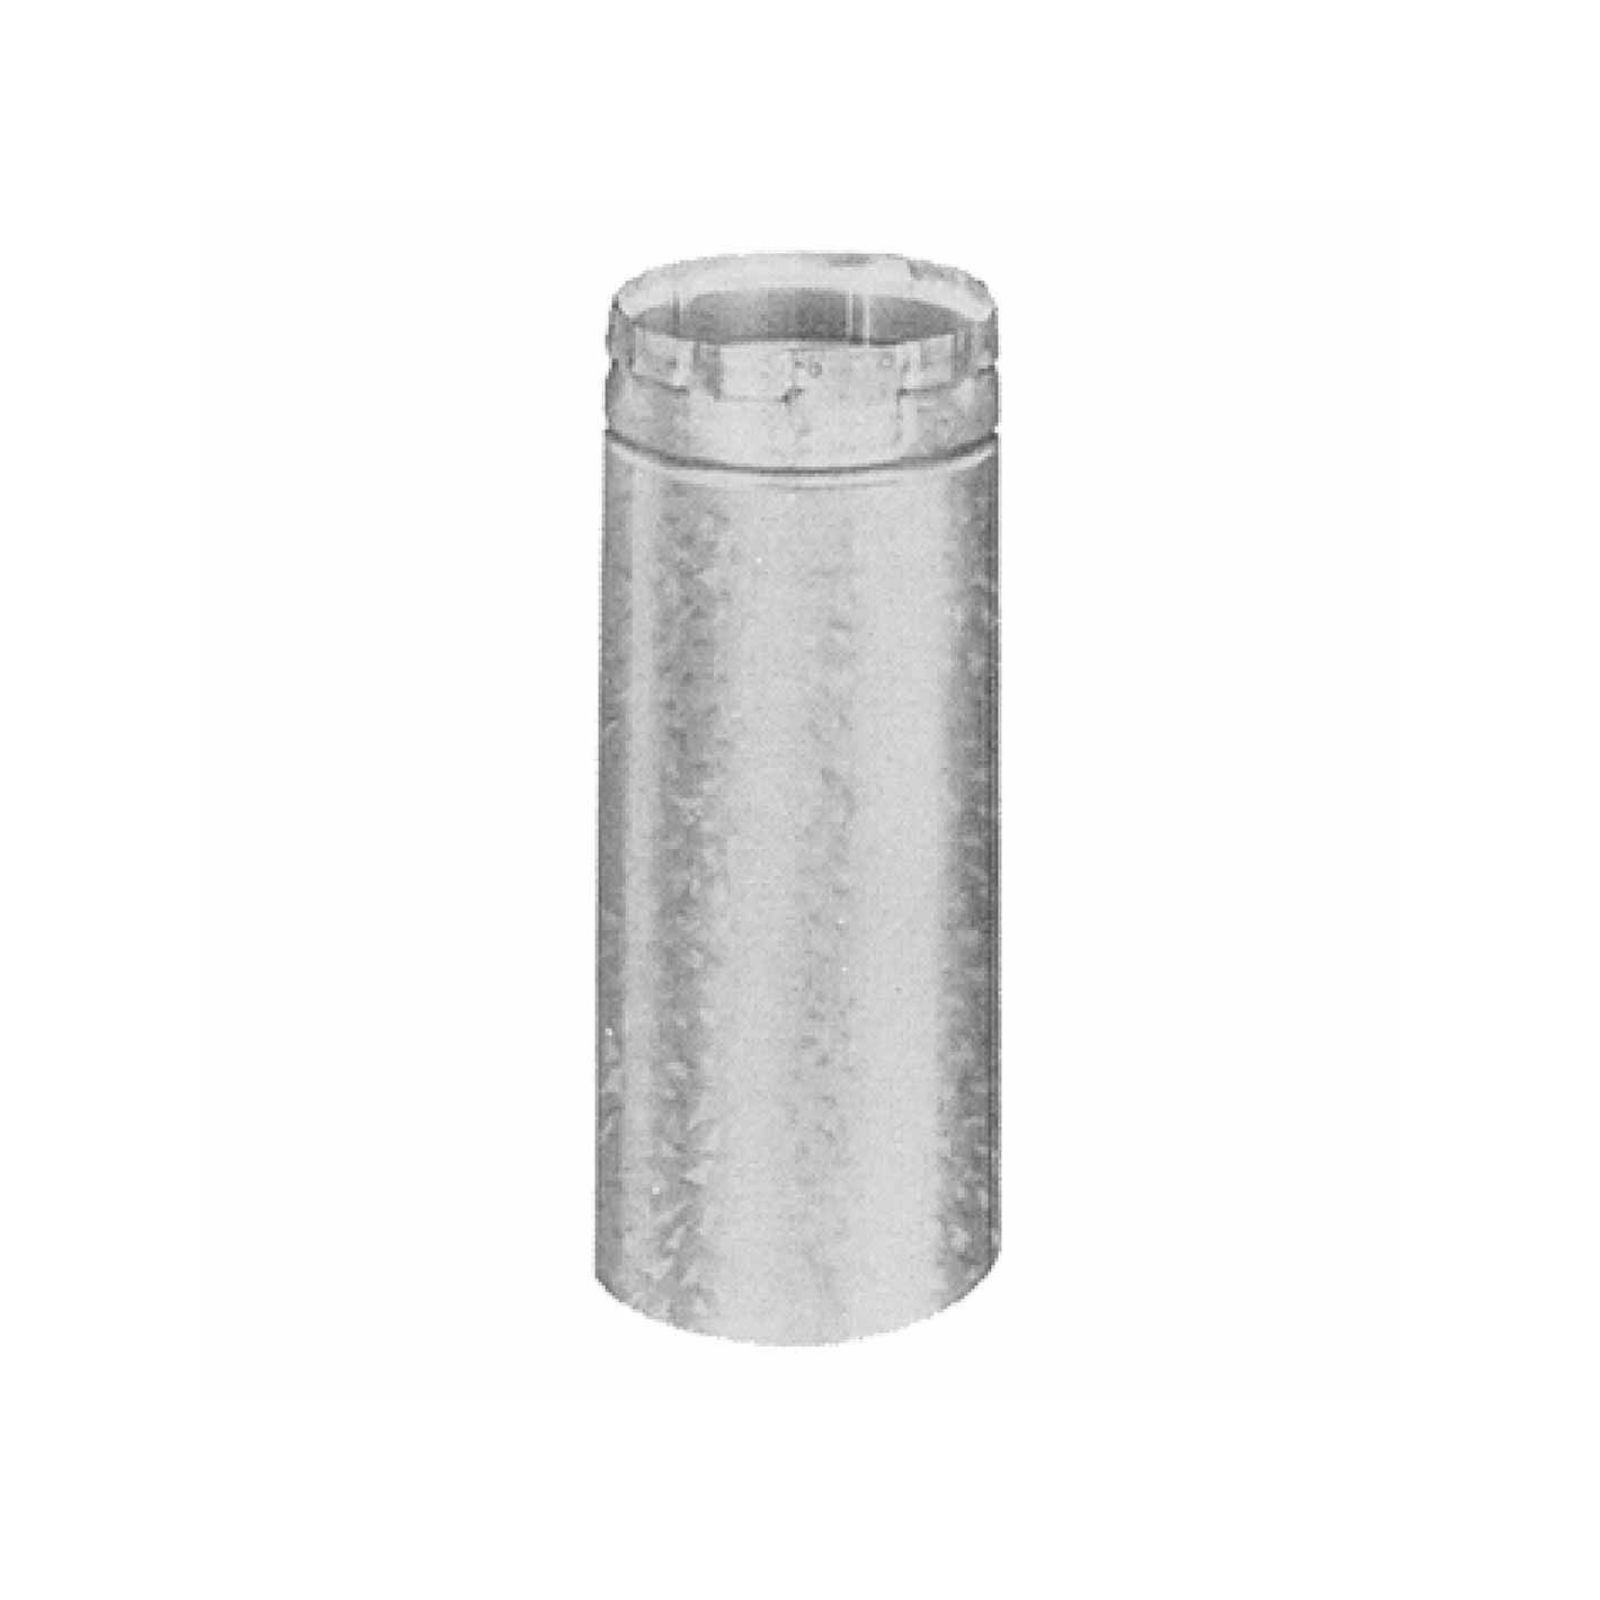 "AmeriVent 5E12A - Adjustable Pipe Section Type B Gas Vent, 5"" Round X 12"" Length"